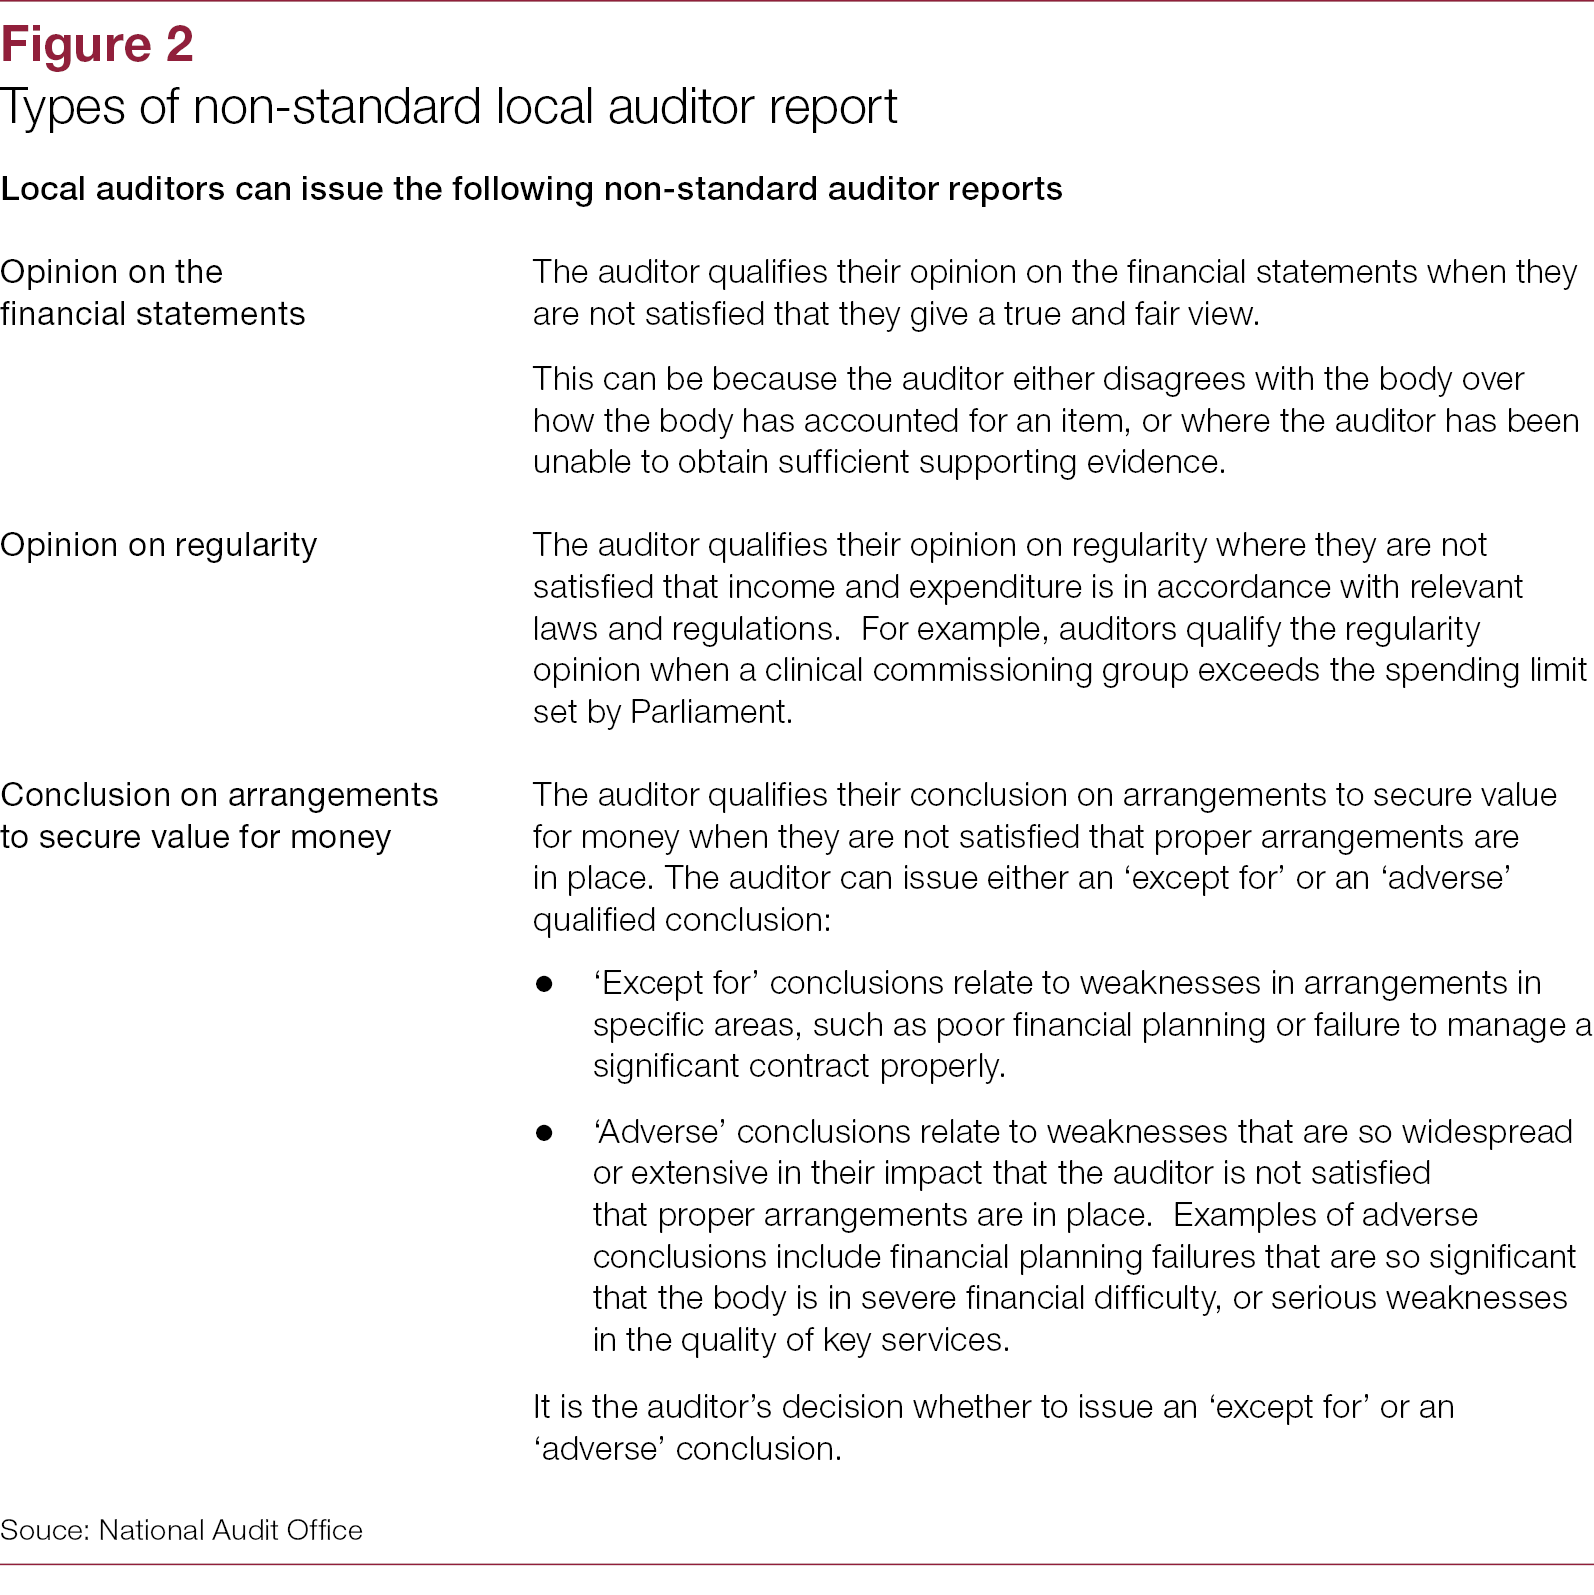 Figure 2-Local auditor reporting in England 2018 - National